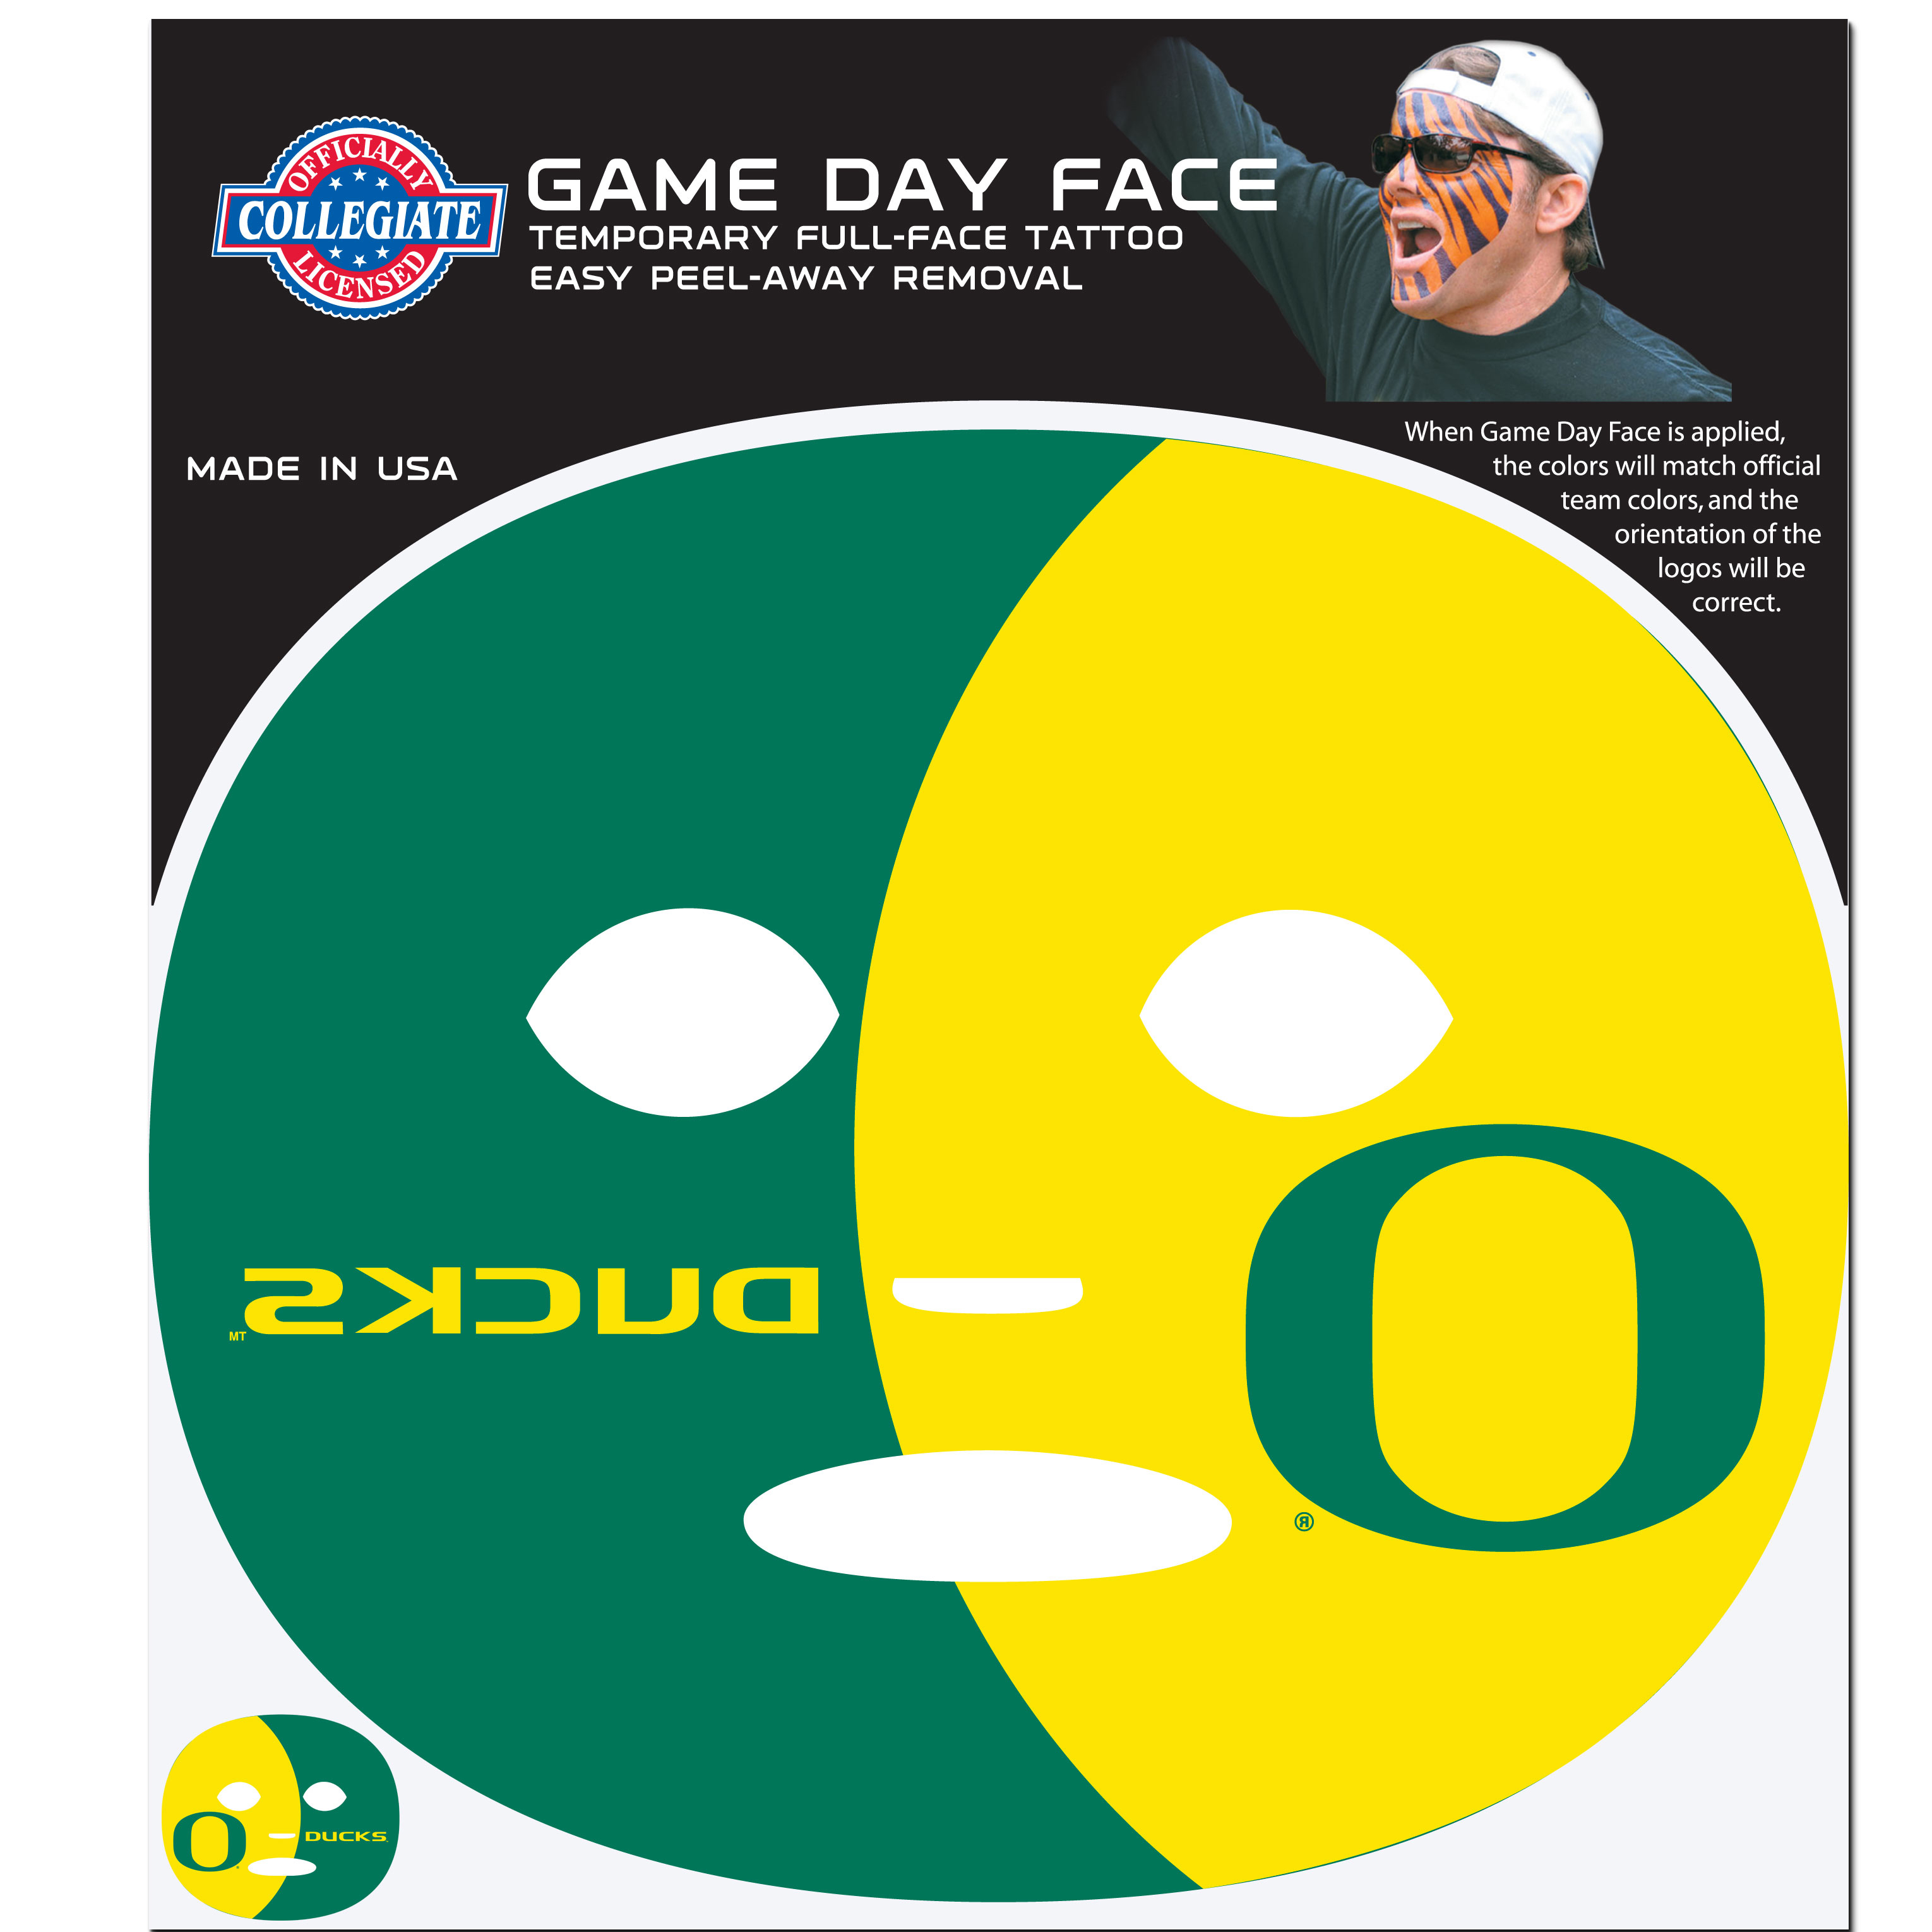 Oregon Ducks Game Face Temporary Tattoo - No better way to show your Oregon Ducks pride than by painting your face. Siskiyou's Game Day Face Temporary Tattoo isn't your typical face paint. It is a water based application that doesn't smudge, smear or sweat off  while you're wearing it and easily peels off after you're done celebrating your team's big Win! The temporary tattoo is large enough to trim down to fit your face.  Our Game Day Face Temporary Tattoo's are fun for fans of all ages. You may have seen our product before,  these are the same Temporary Face Tattoos as pitched on ABC's Shark Tank.